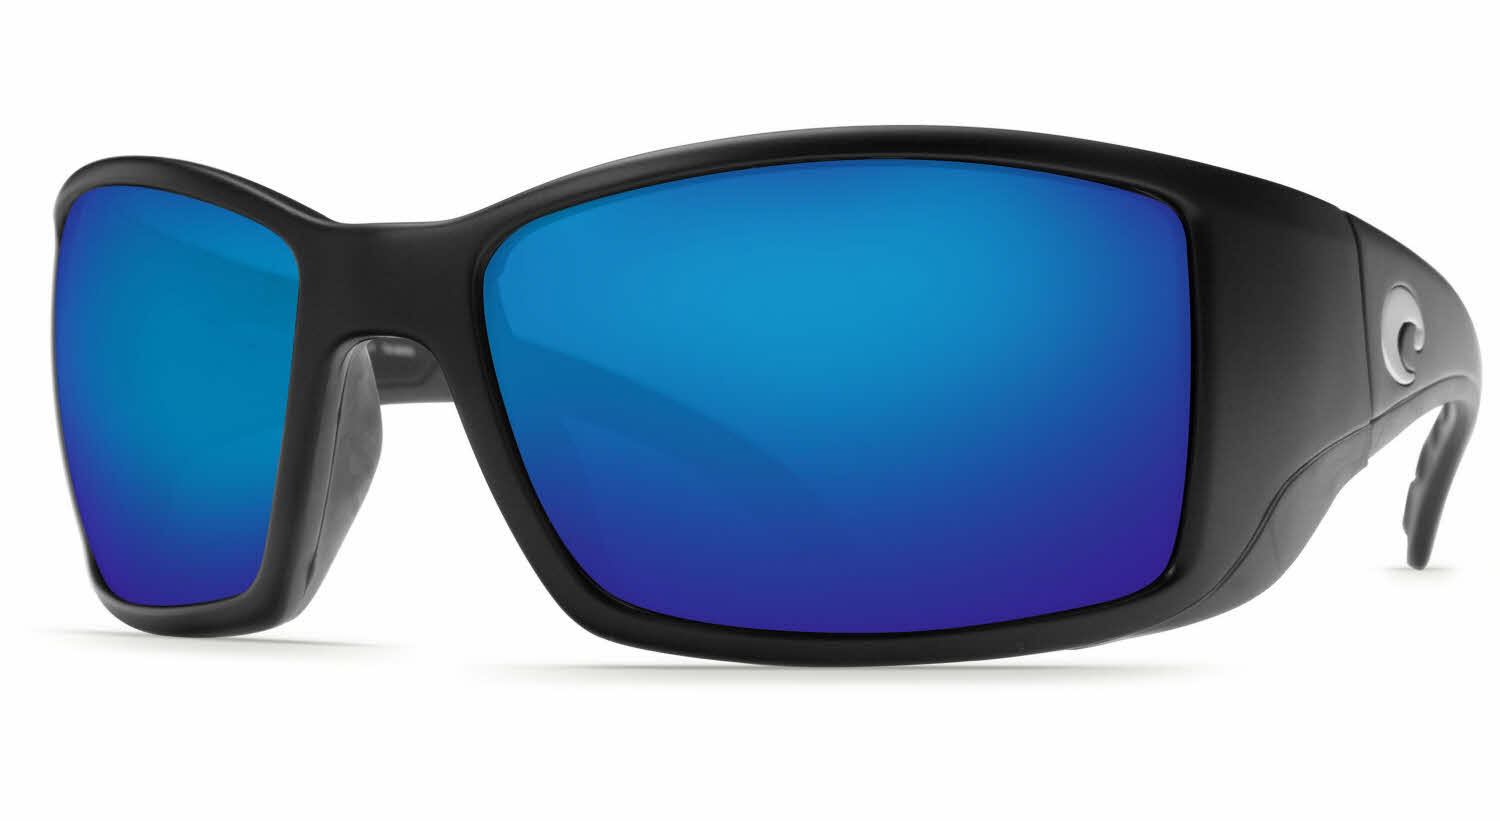 3b5e9c37565 Costa Blackfin Sunglasses